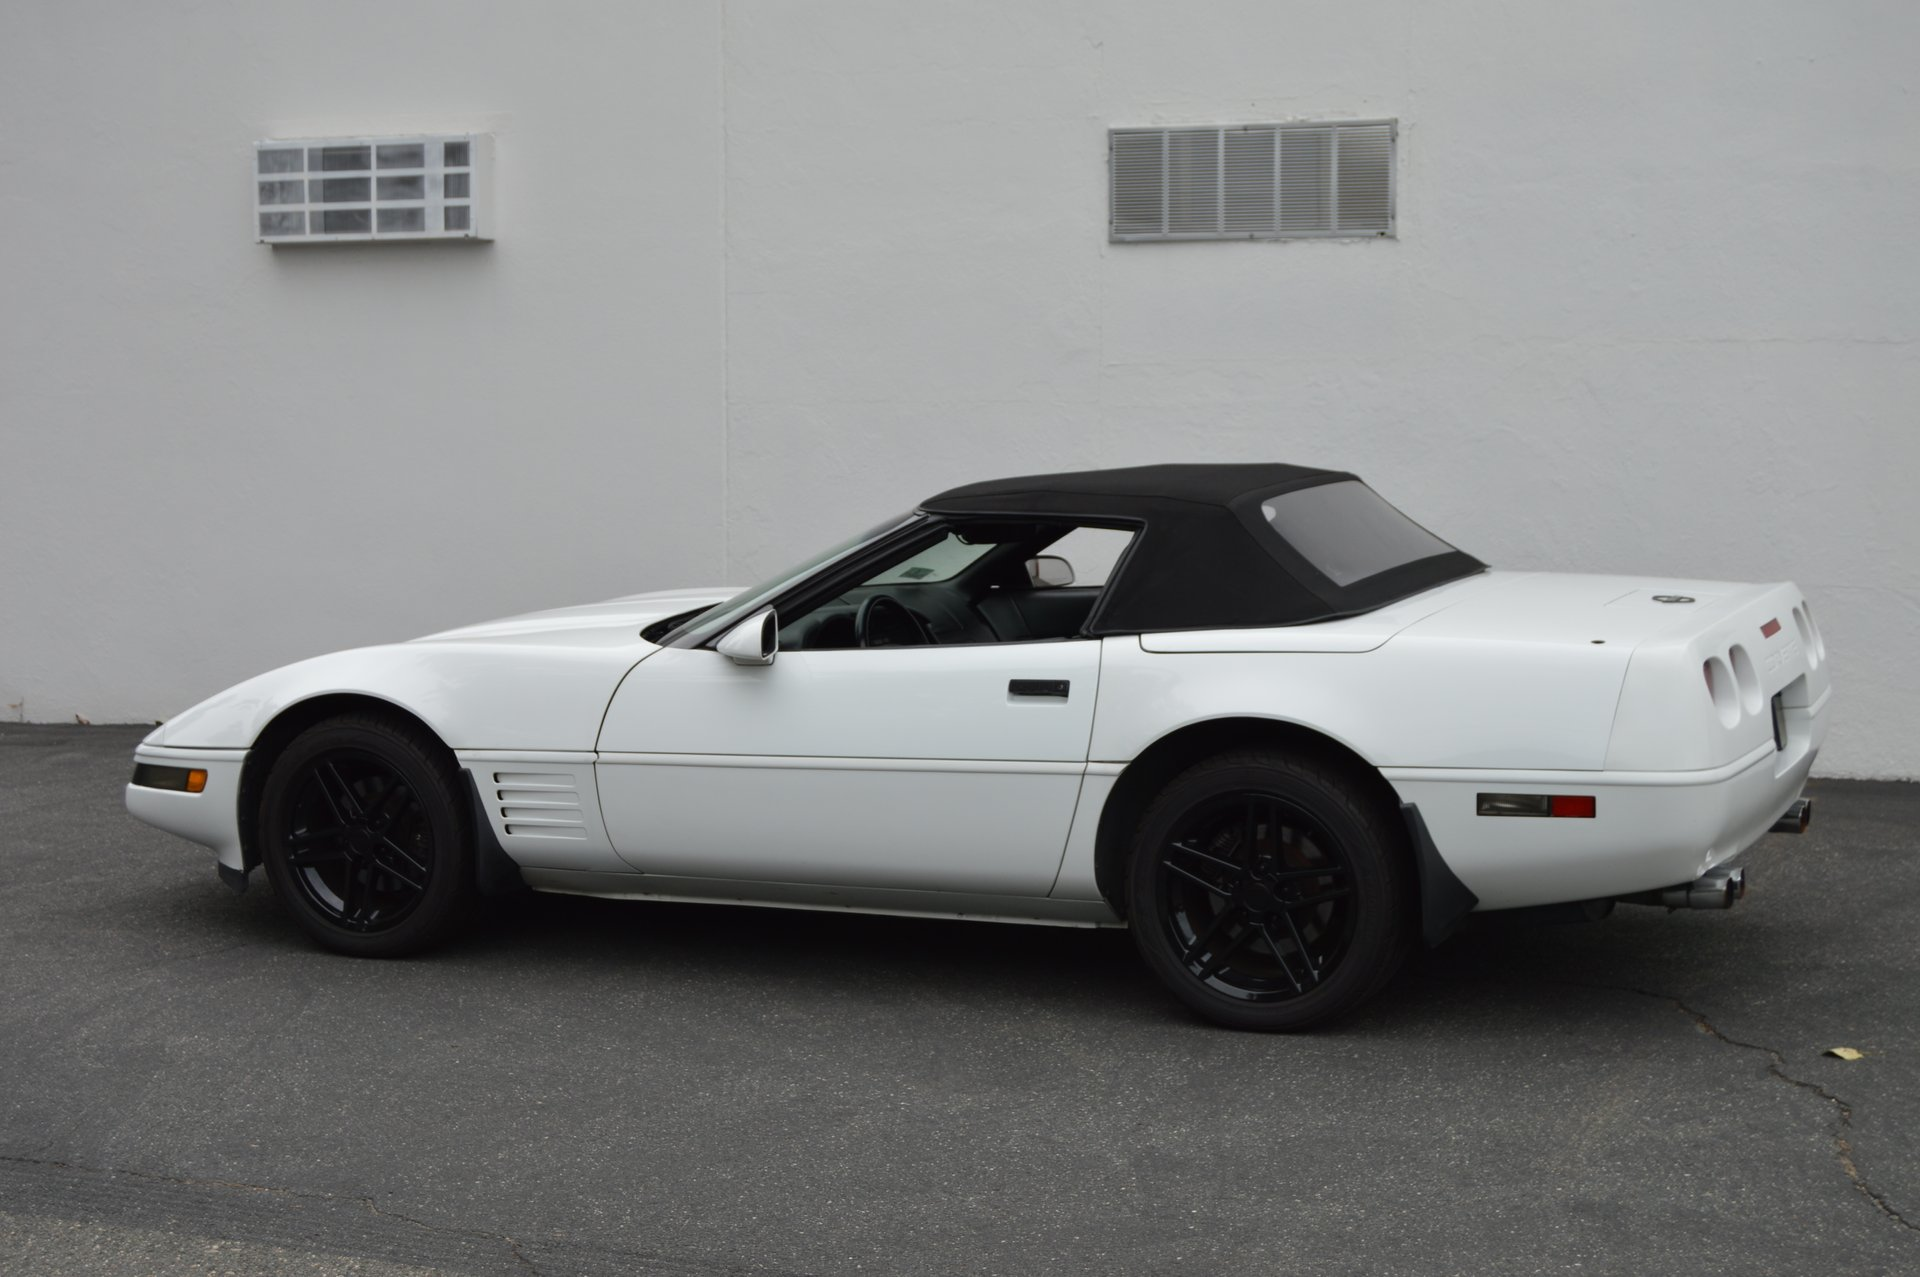 1991 Chevrolet Corvette | Mutual Enterprises Inc